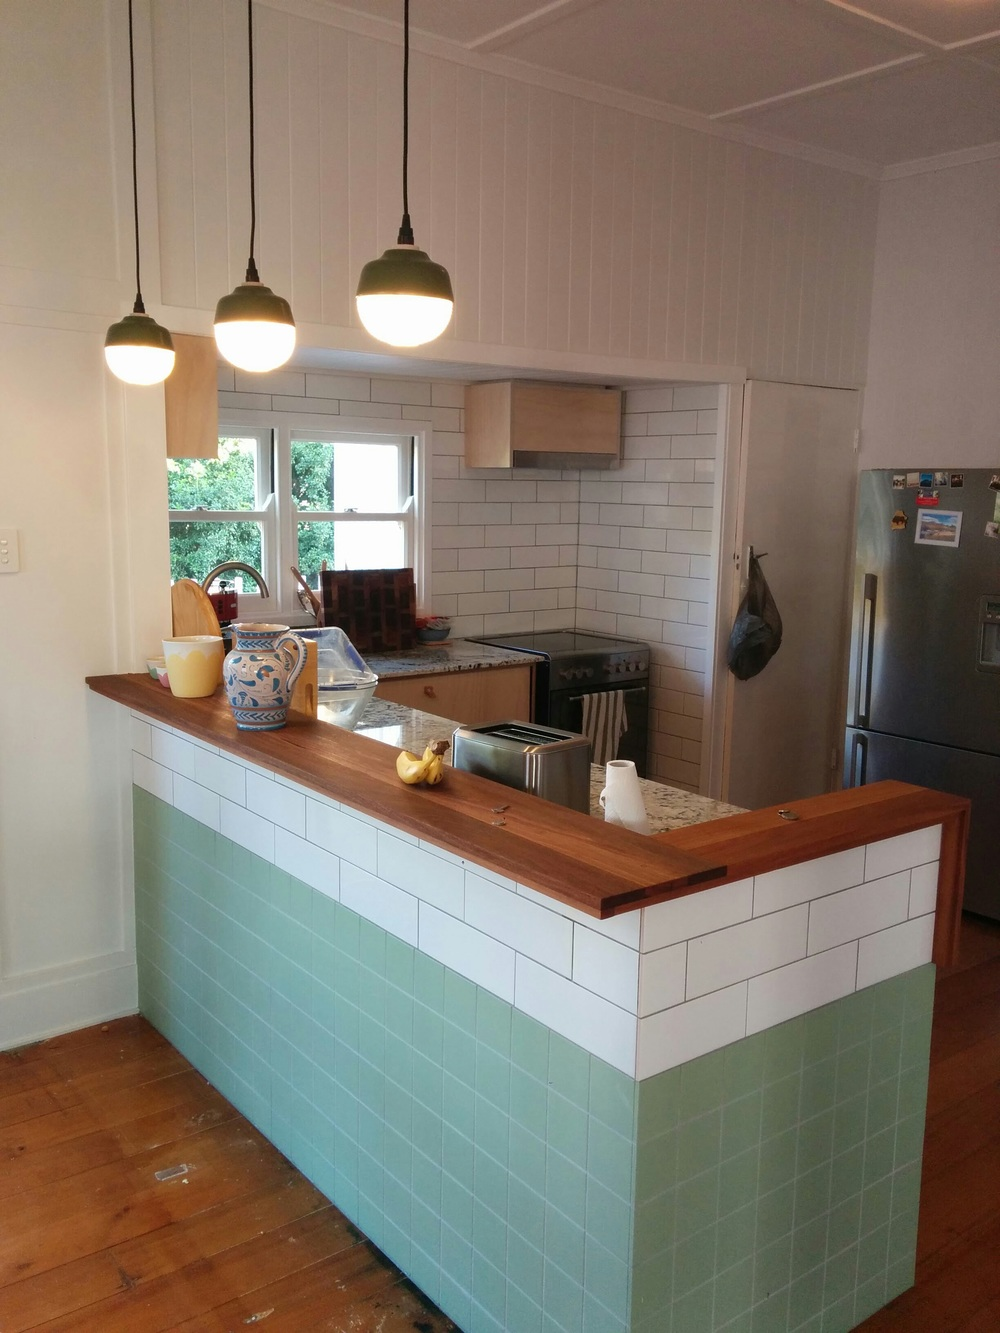 BrisbaneKitchen